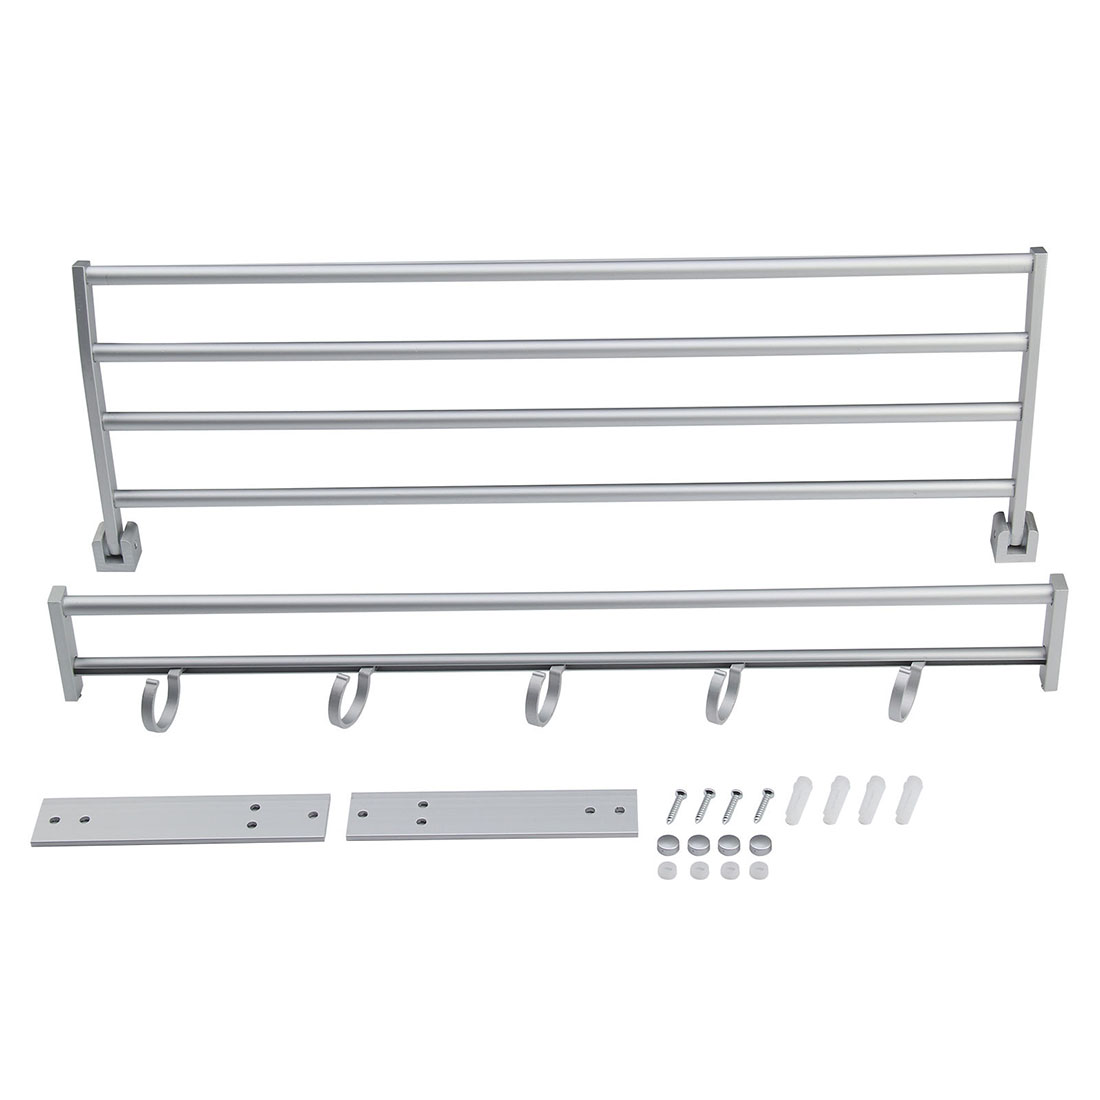 Large Double Shelf Wall Mounted Bar Bathroom Towel Rail Storage Holder Rack Hook Towel Rack To Store Towels Washcloths Shampoo foldable portable mini hair blow dryer 850w traveller hair dryer compact blower power adapter converter voltage transformer